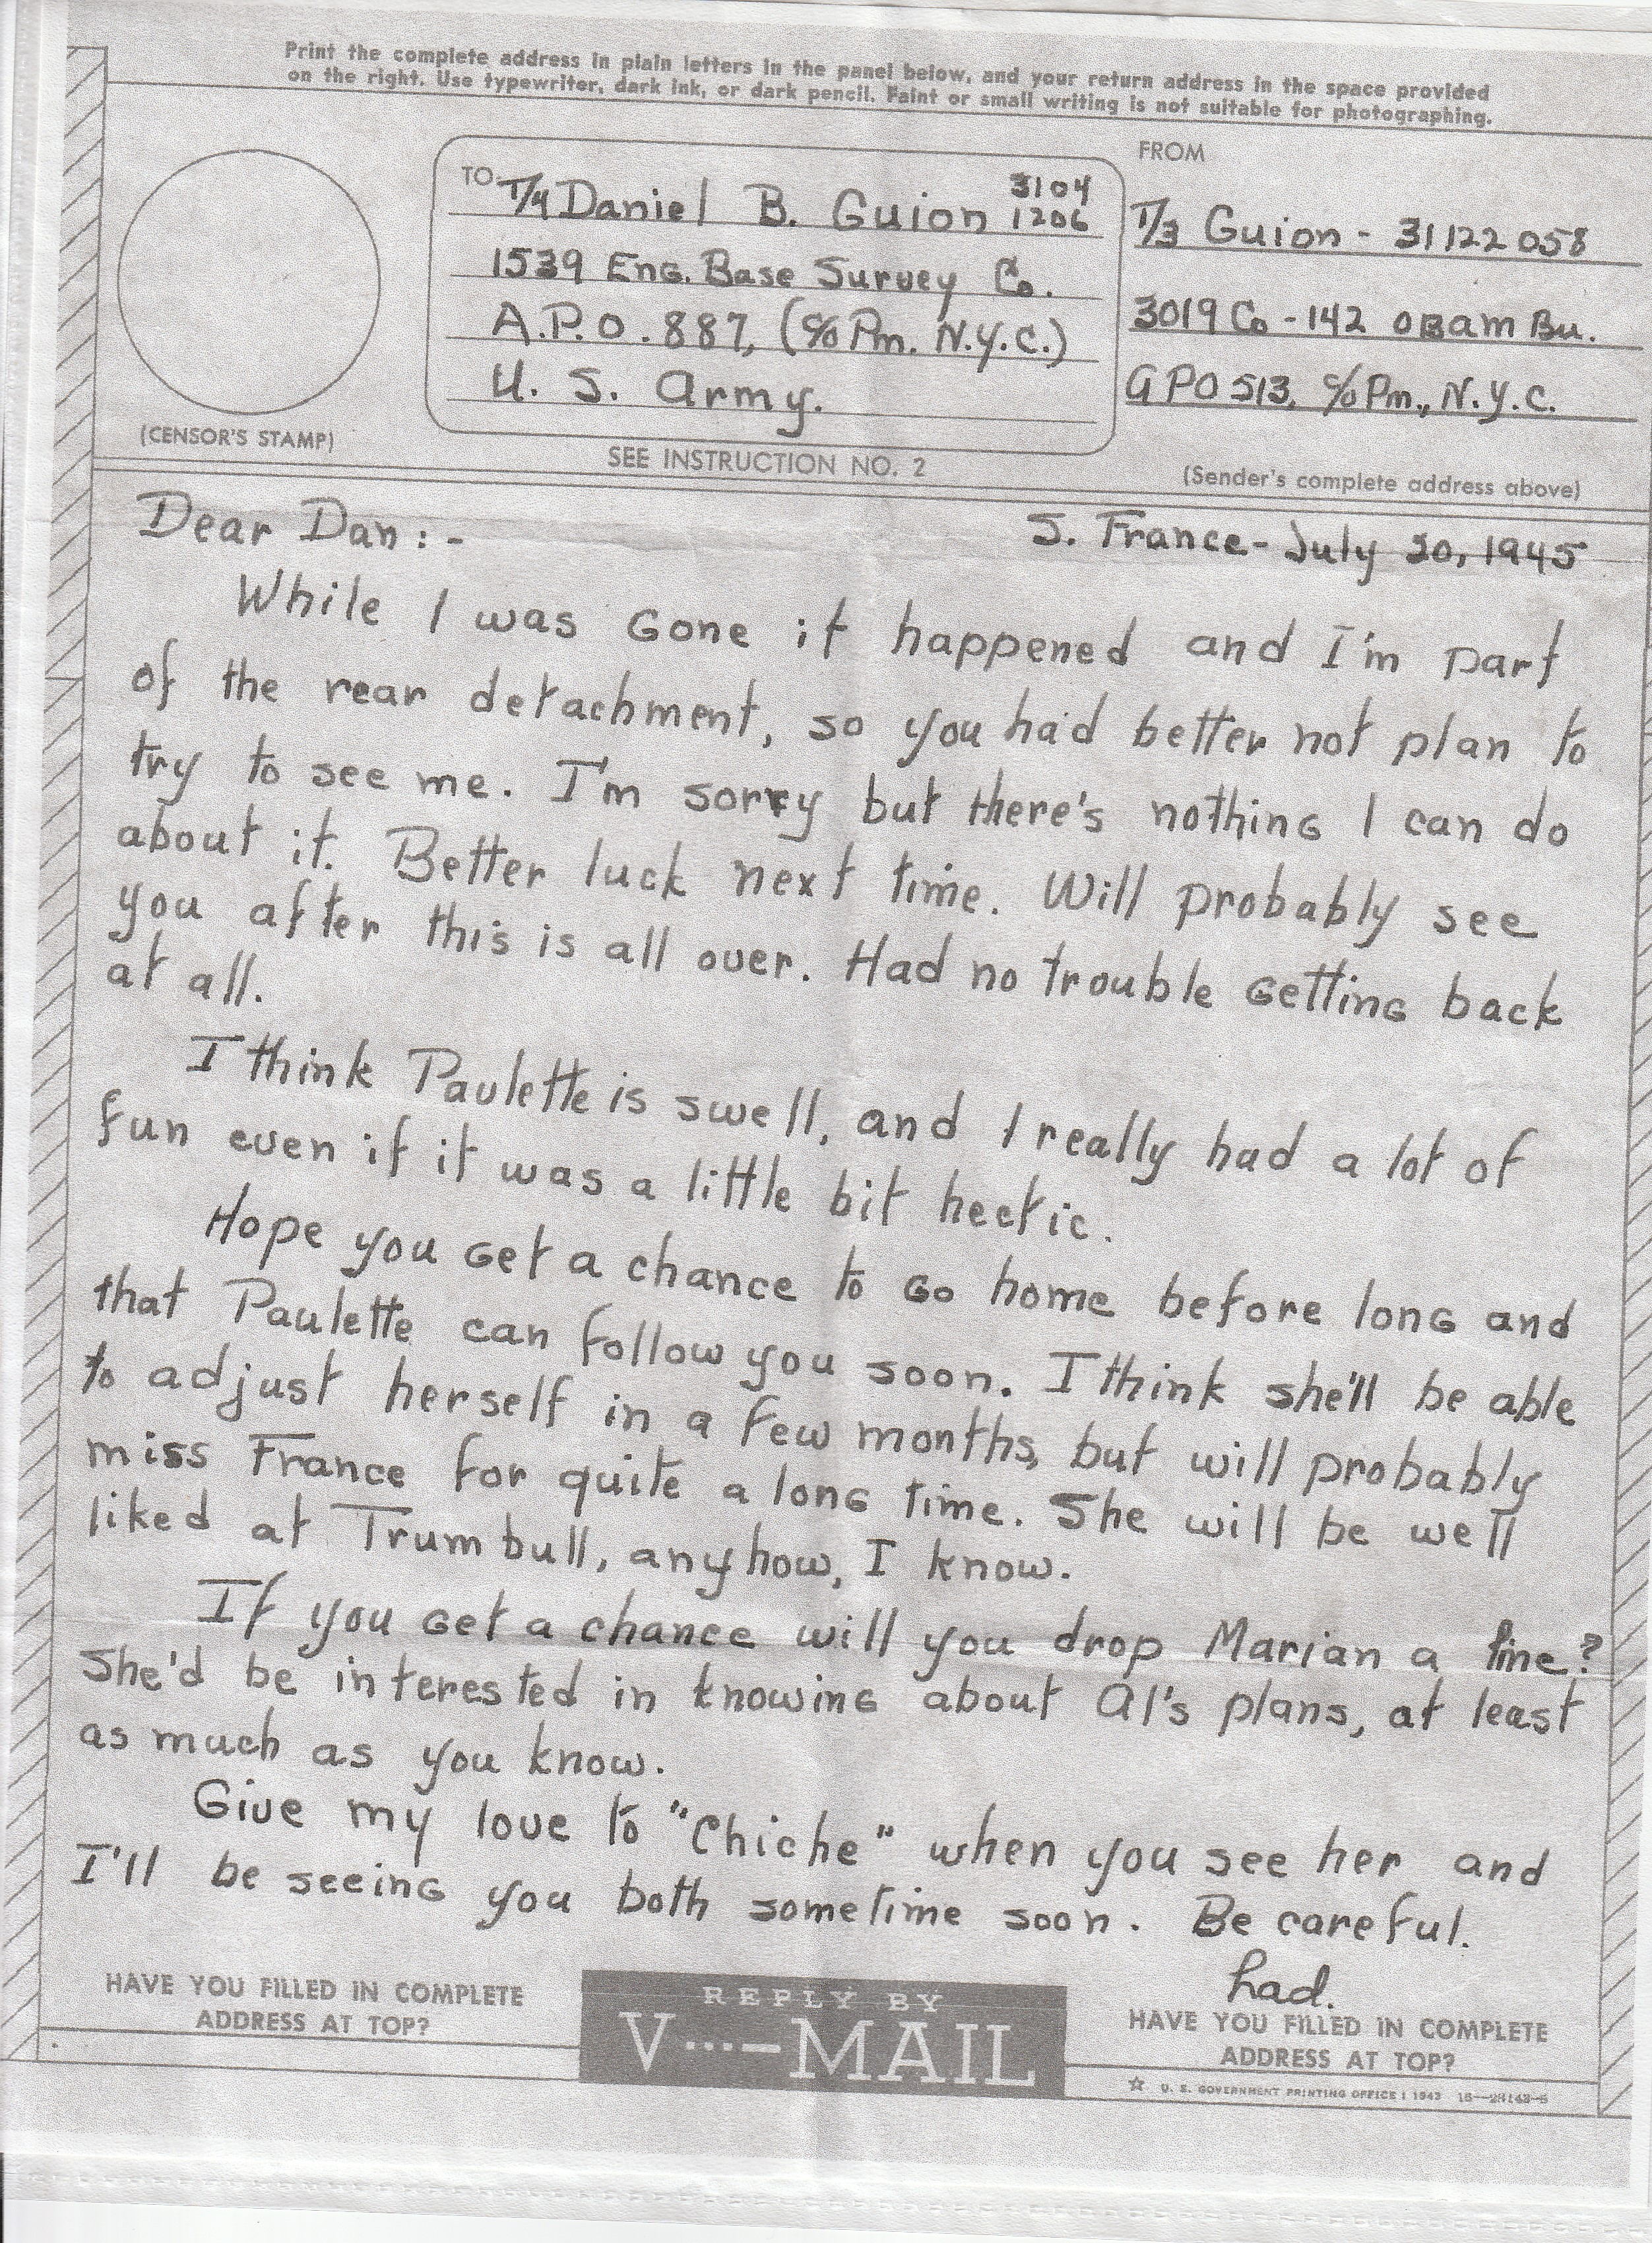 Army Life - Lad Send A V-Mail to Dan - July 20, 1945